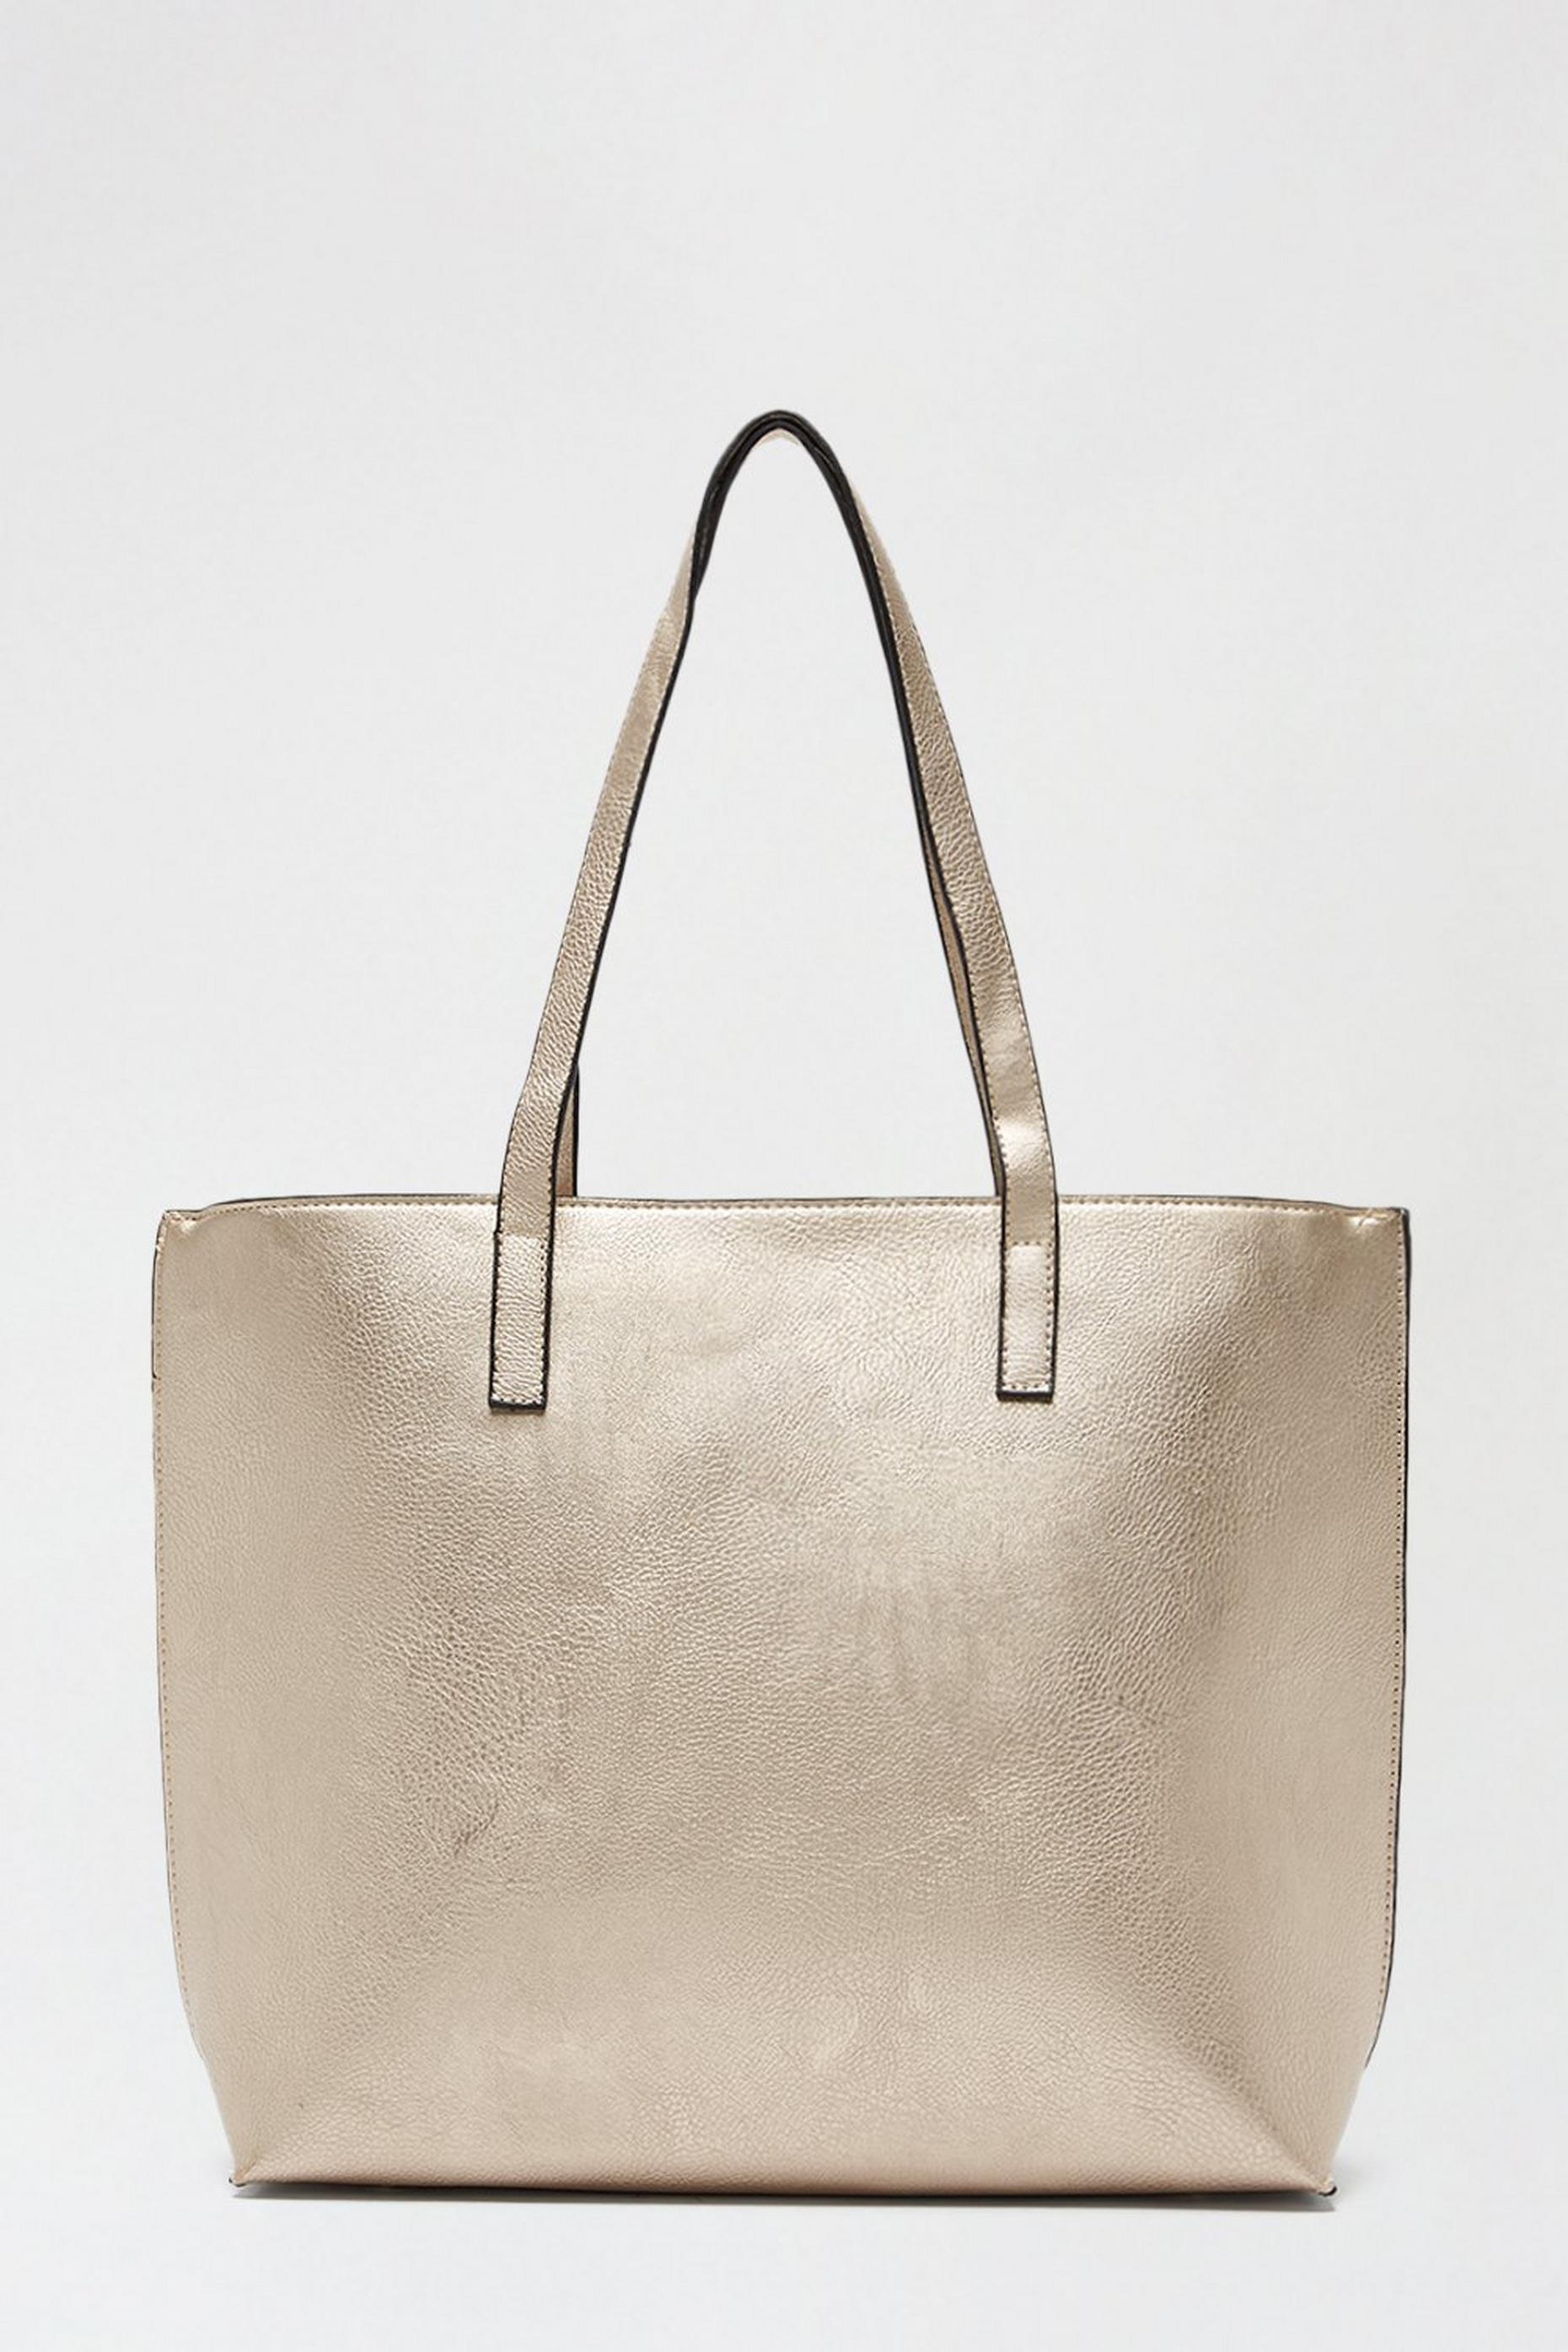 Metallic Gold Shopper Bag